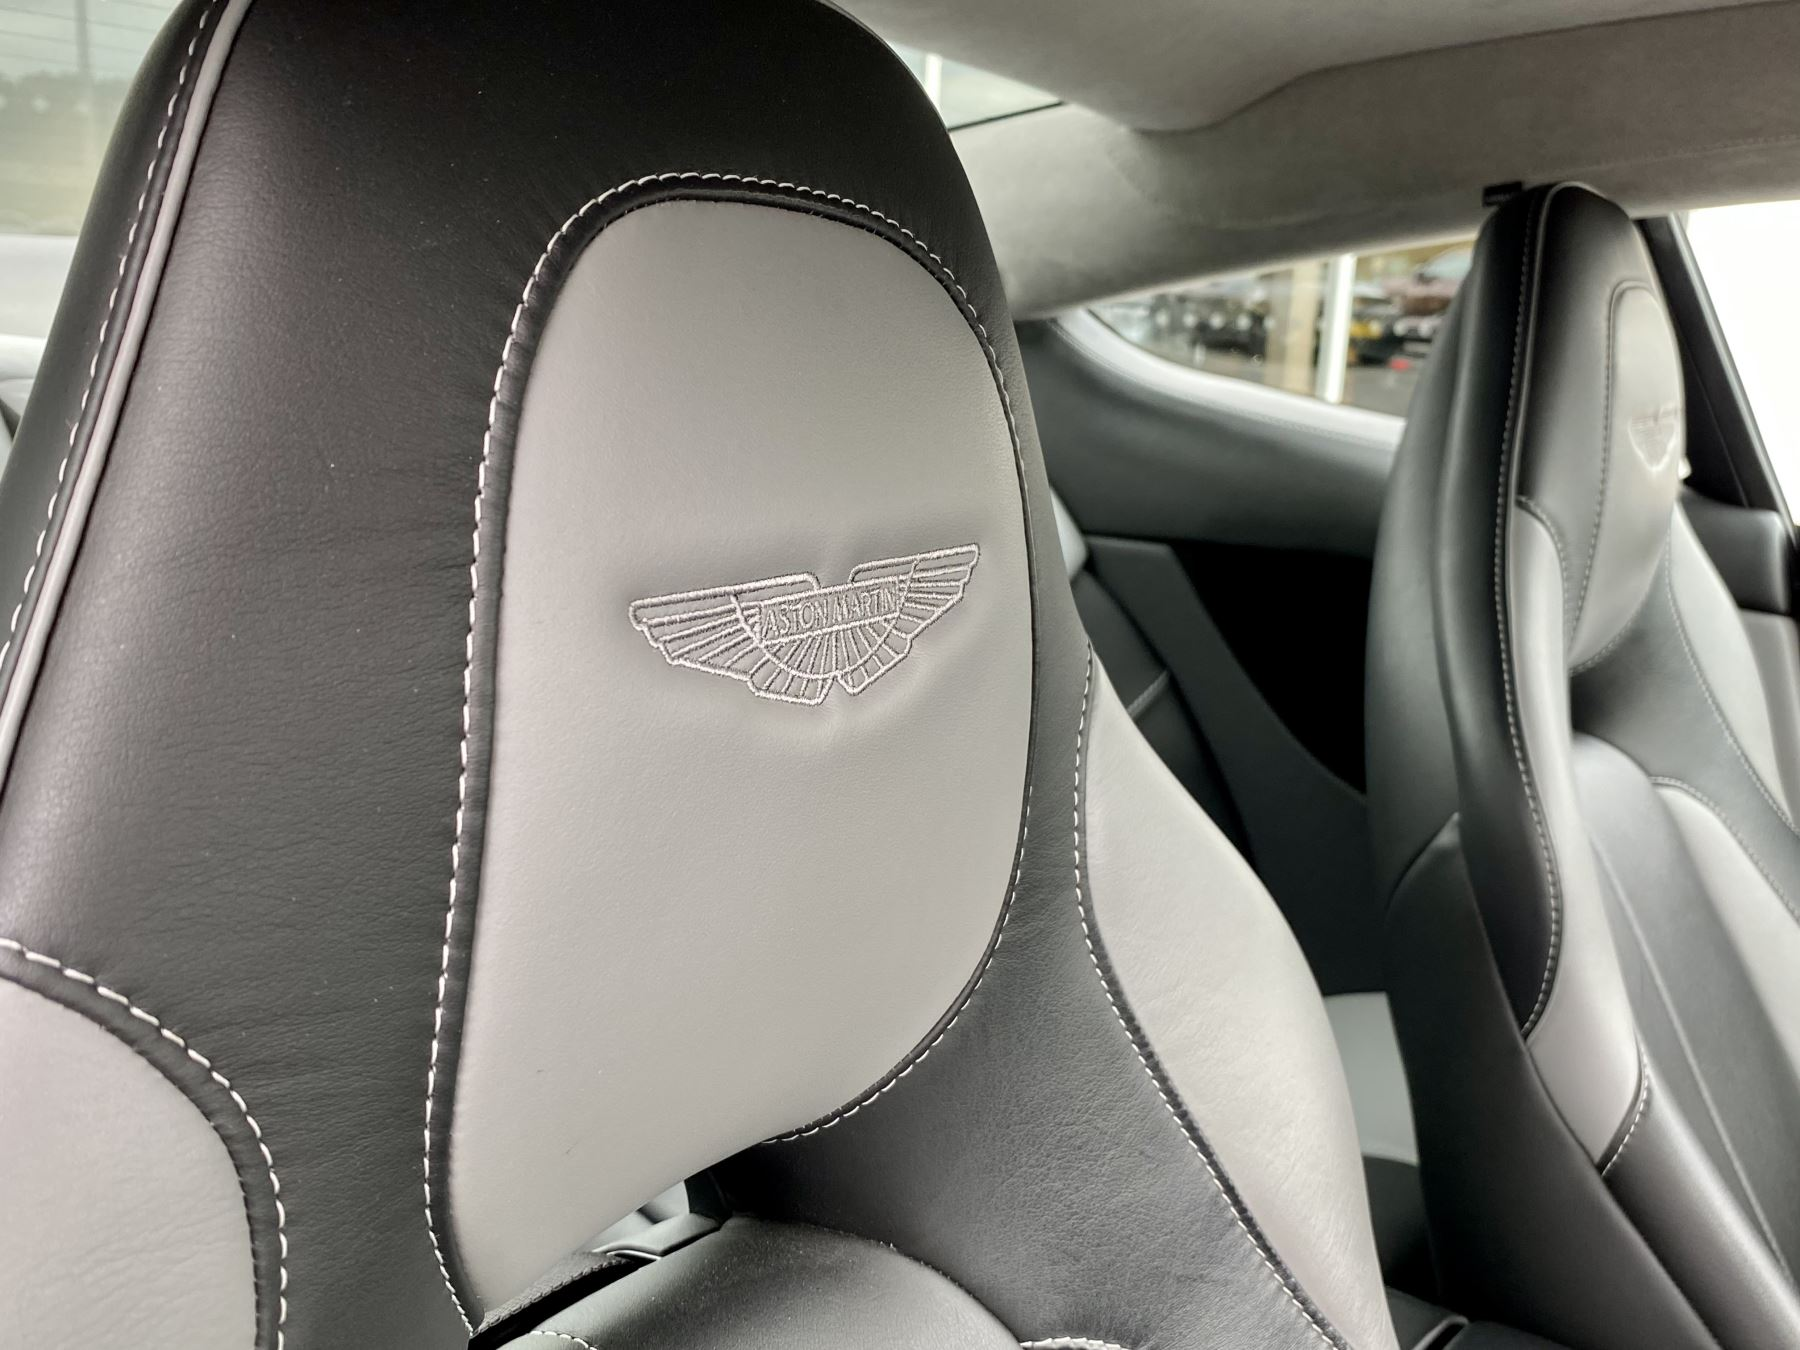 Aston Martin Vanquish V12 [568] 2+2 2dr Touchtronic 3 8 Speed, 2 Owners From New, Onyx Black, Bang And Olufsen. image 20